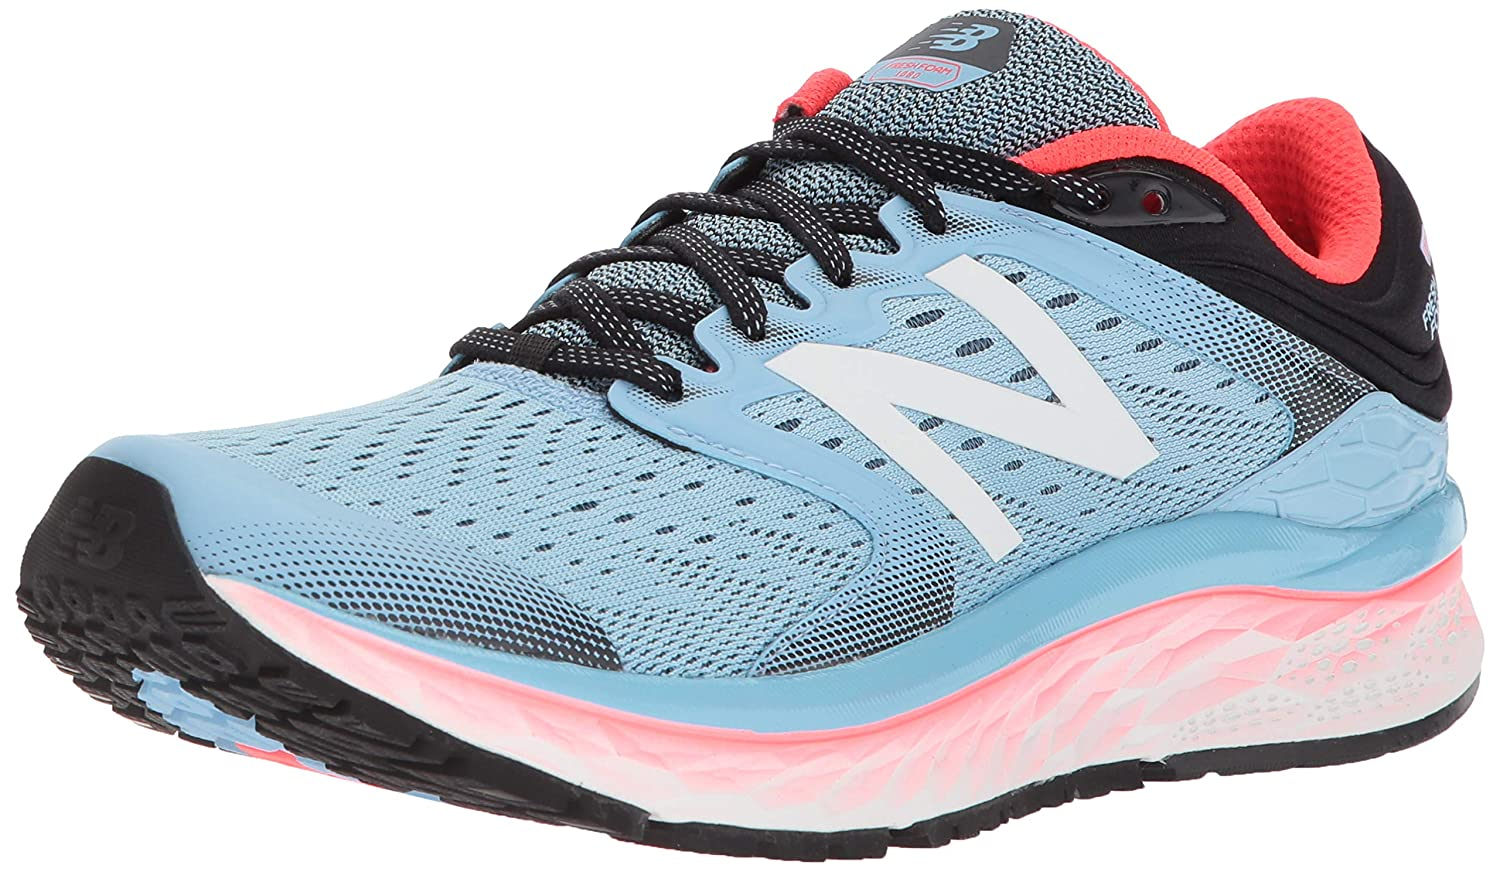 Light bleu Vivid Coral New Balance 1080v8, Running Femme 38.5 EU